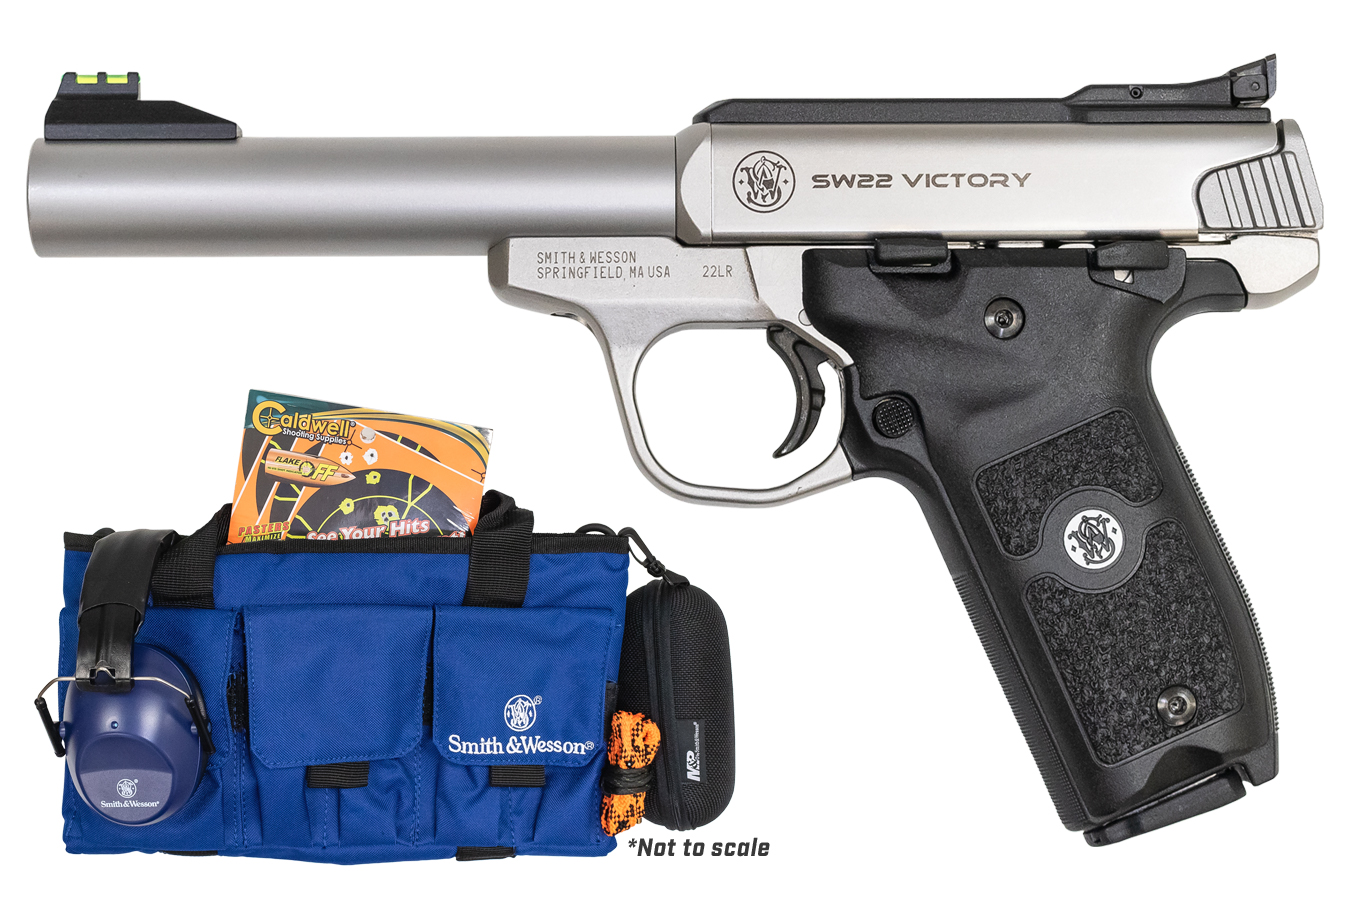 SW22 VICTORY RANGE PACKAGES 22 LR